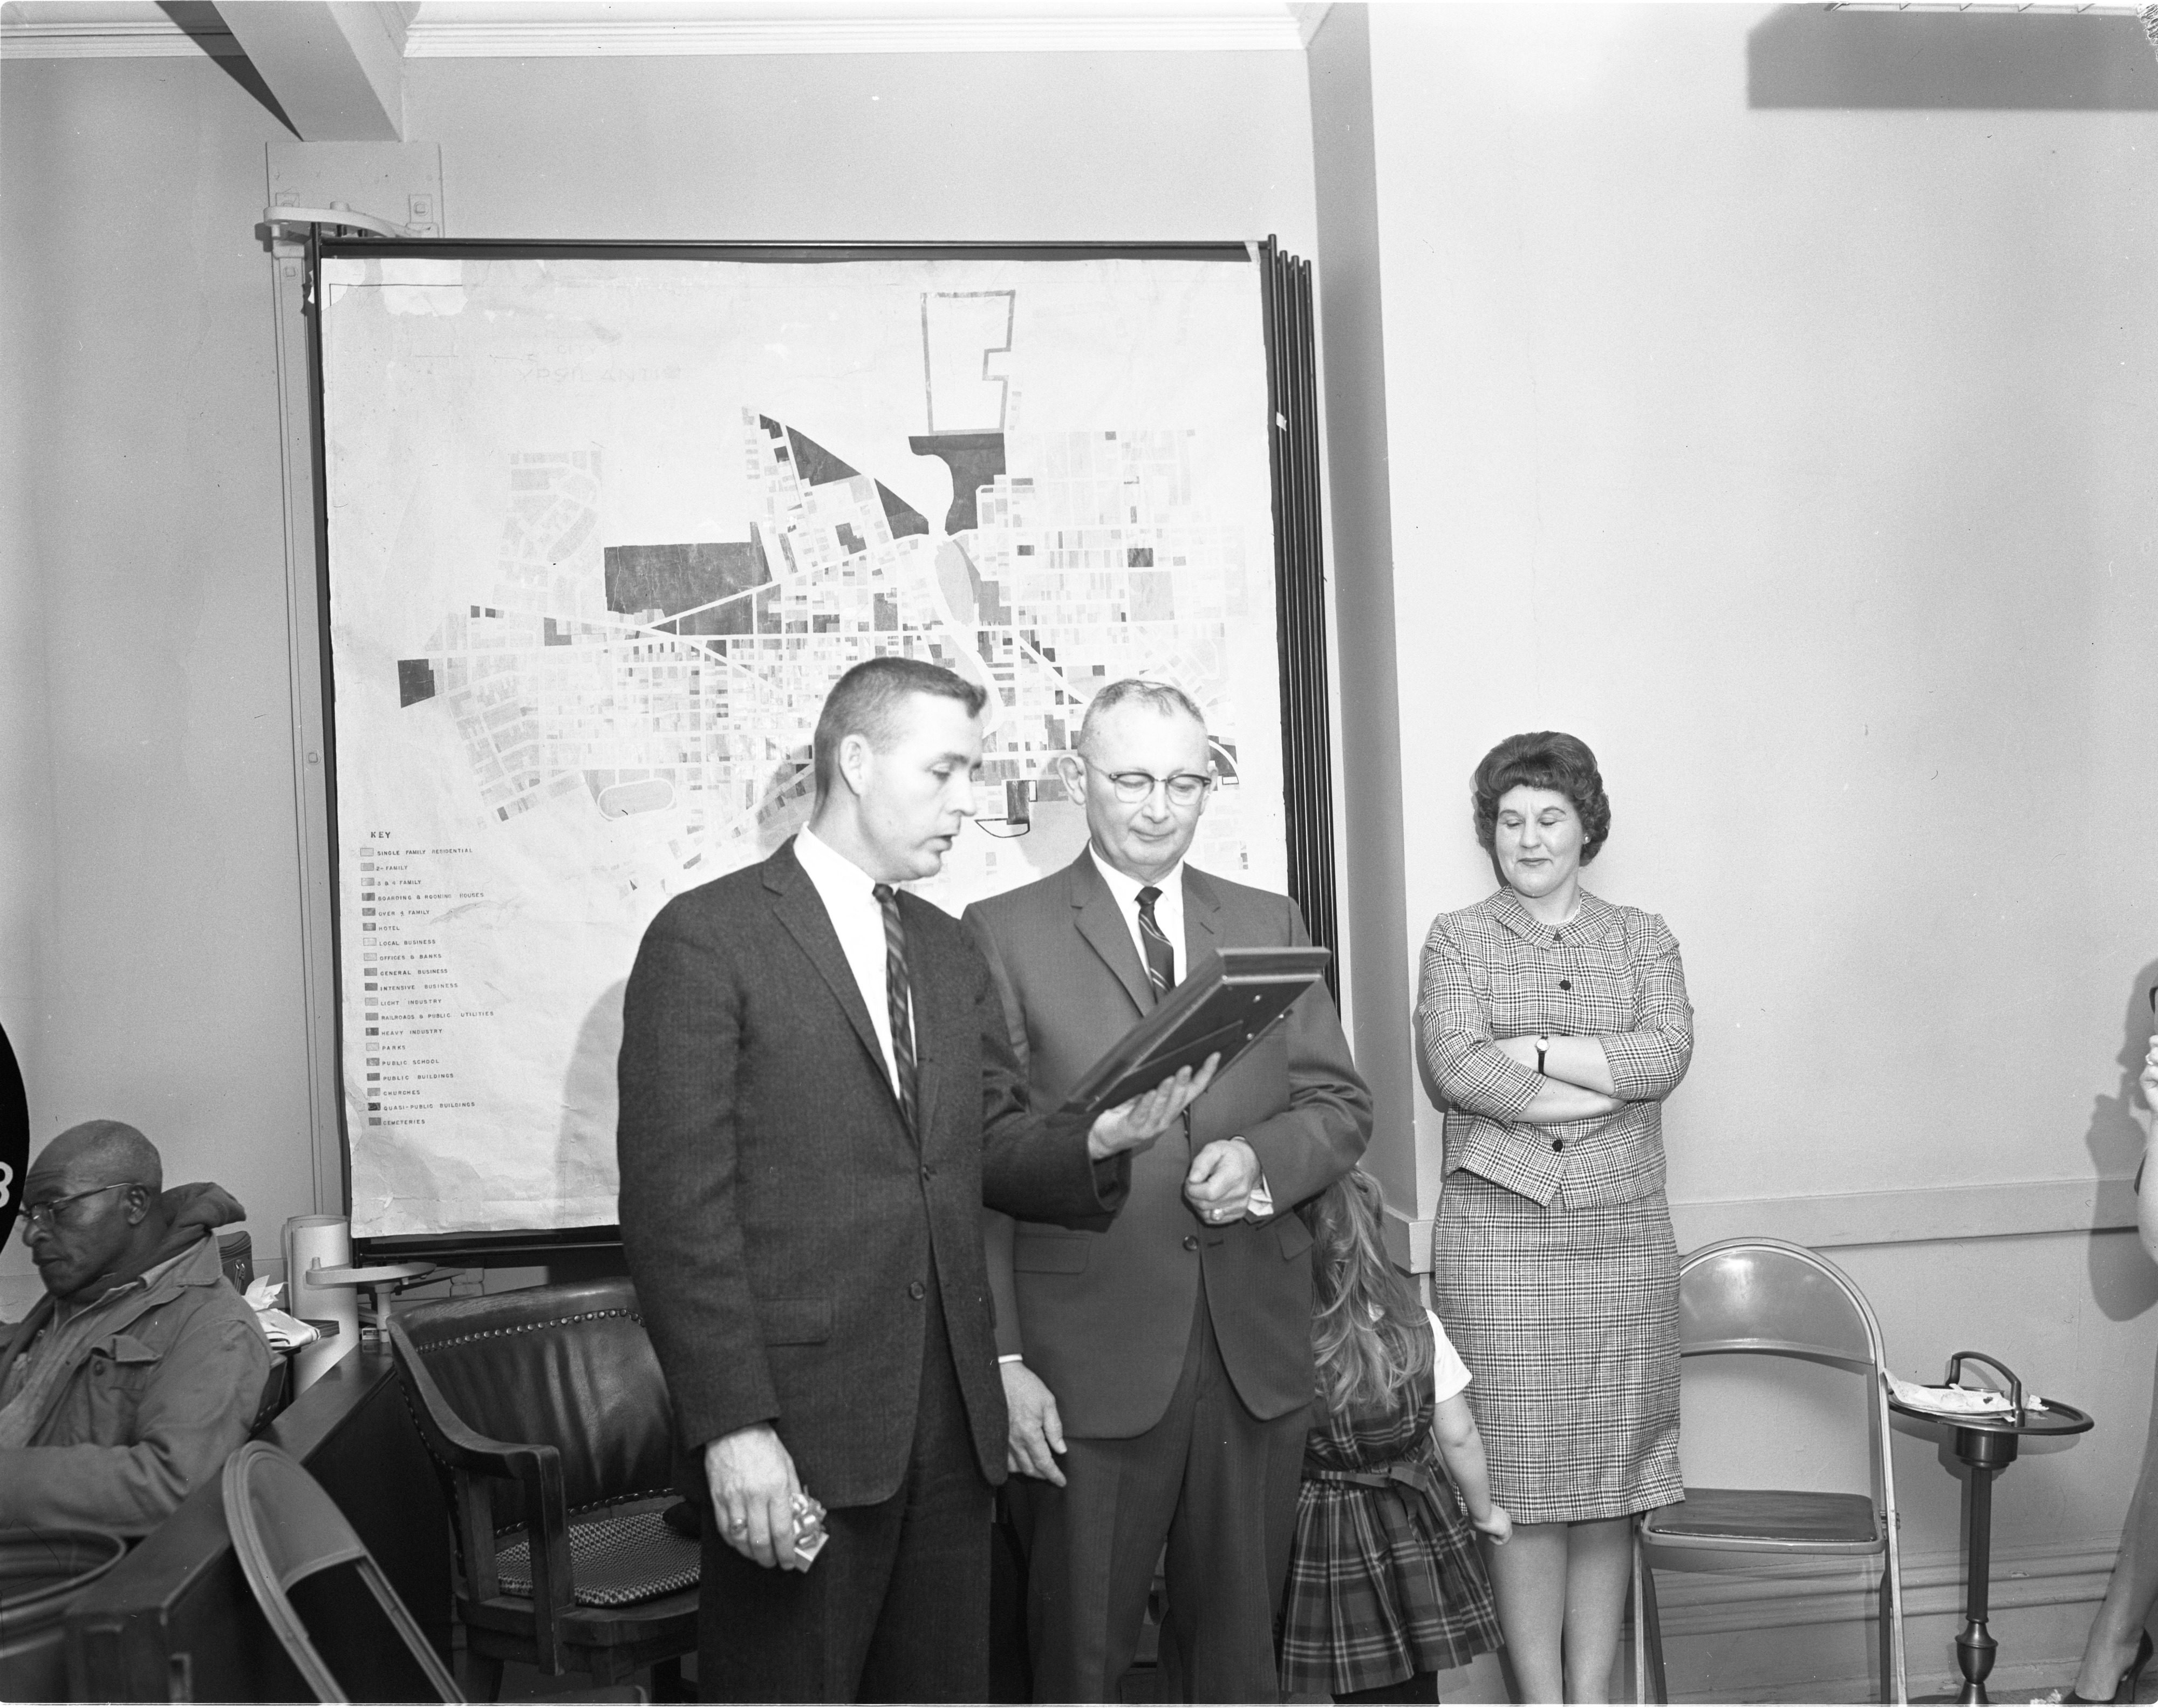 Ypsilanti Mayor Vincent Buck Presents A Plaque To Retiring Fire Chief Gerald Kelly, March 1965 image